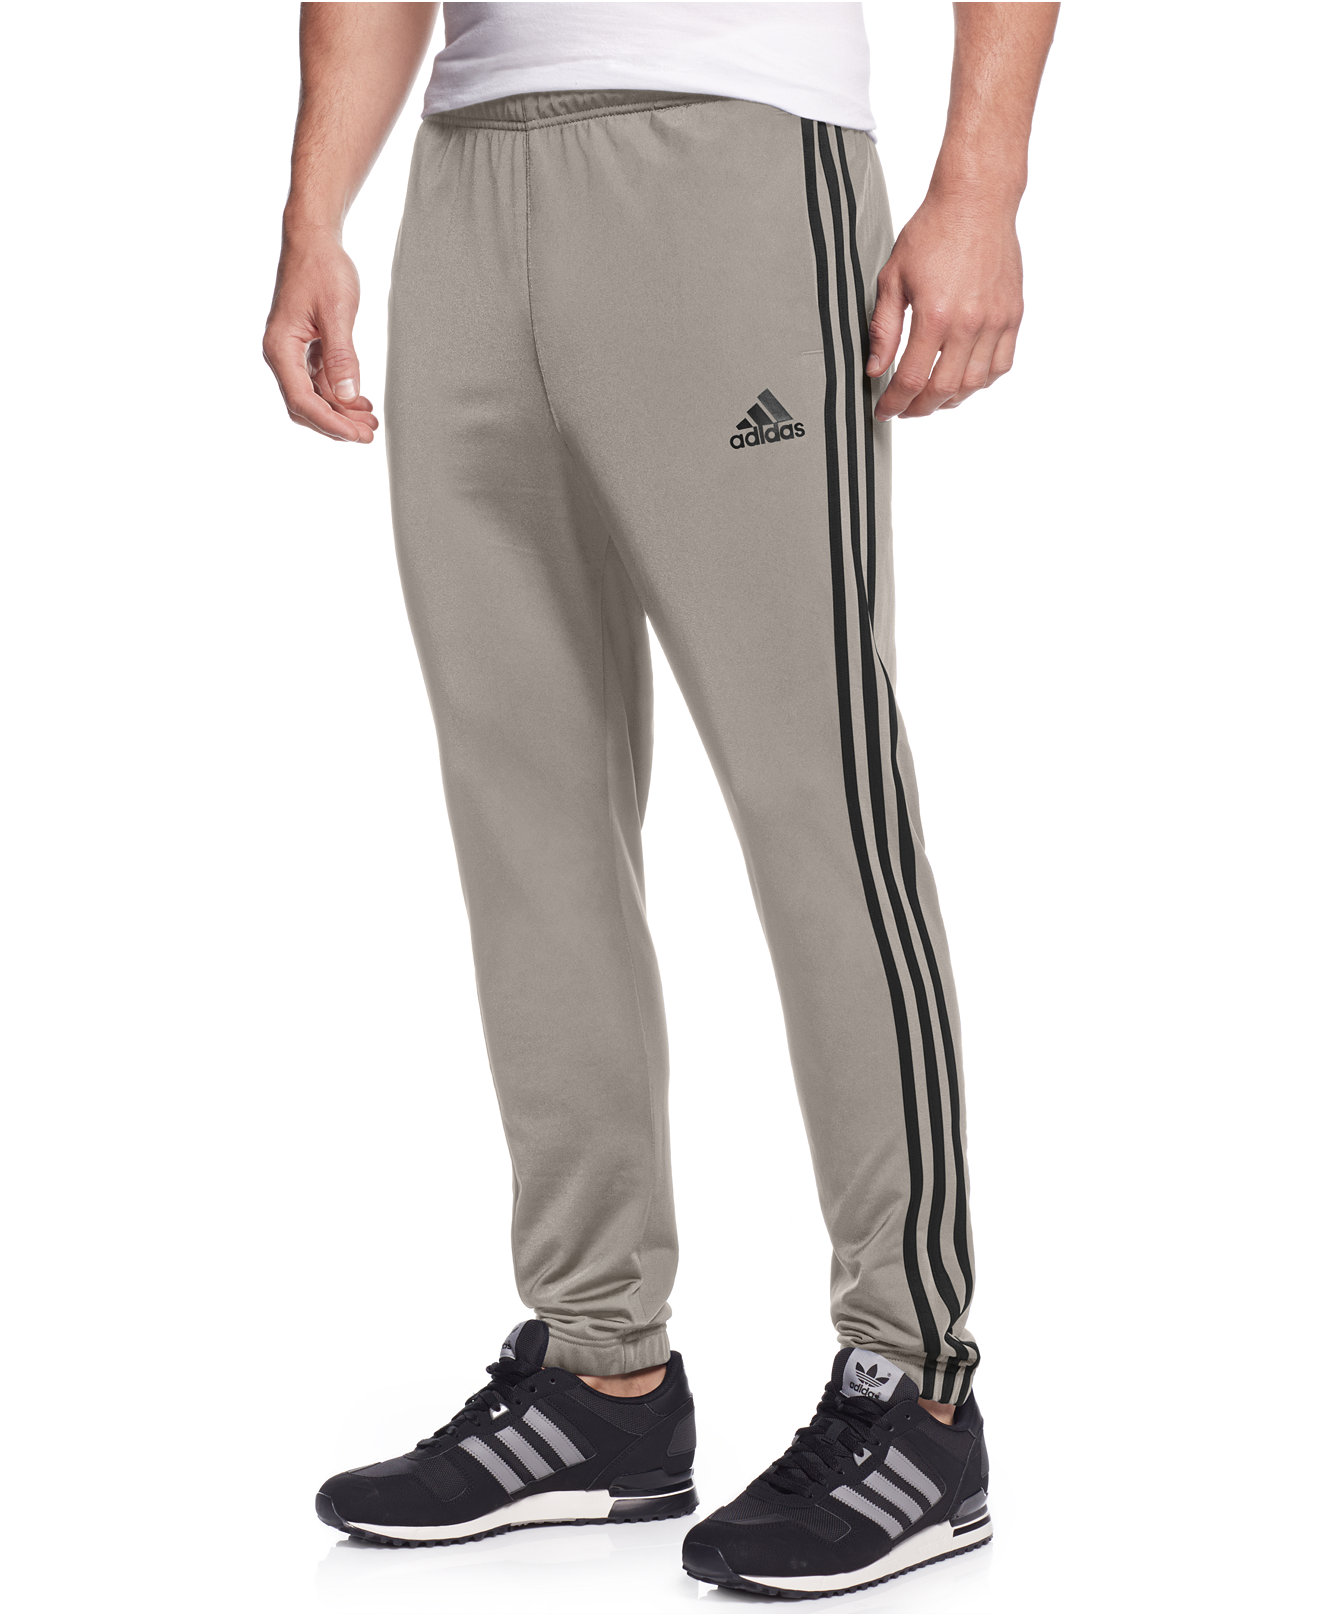 Find great deals on eBay for mens joggers cheap. Shop with confidence.